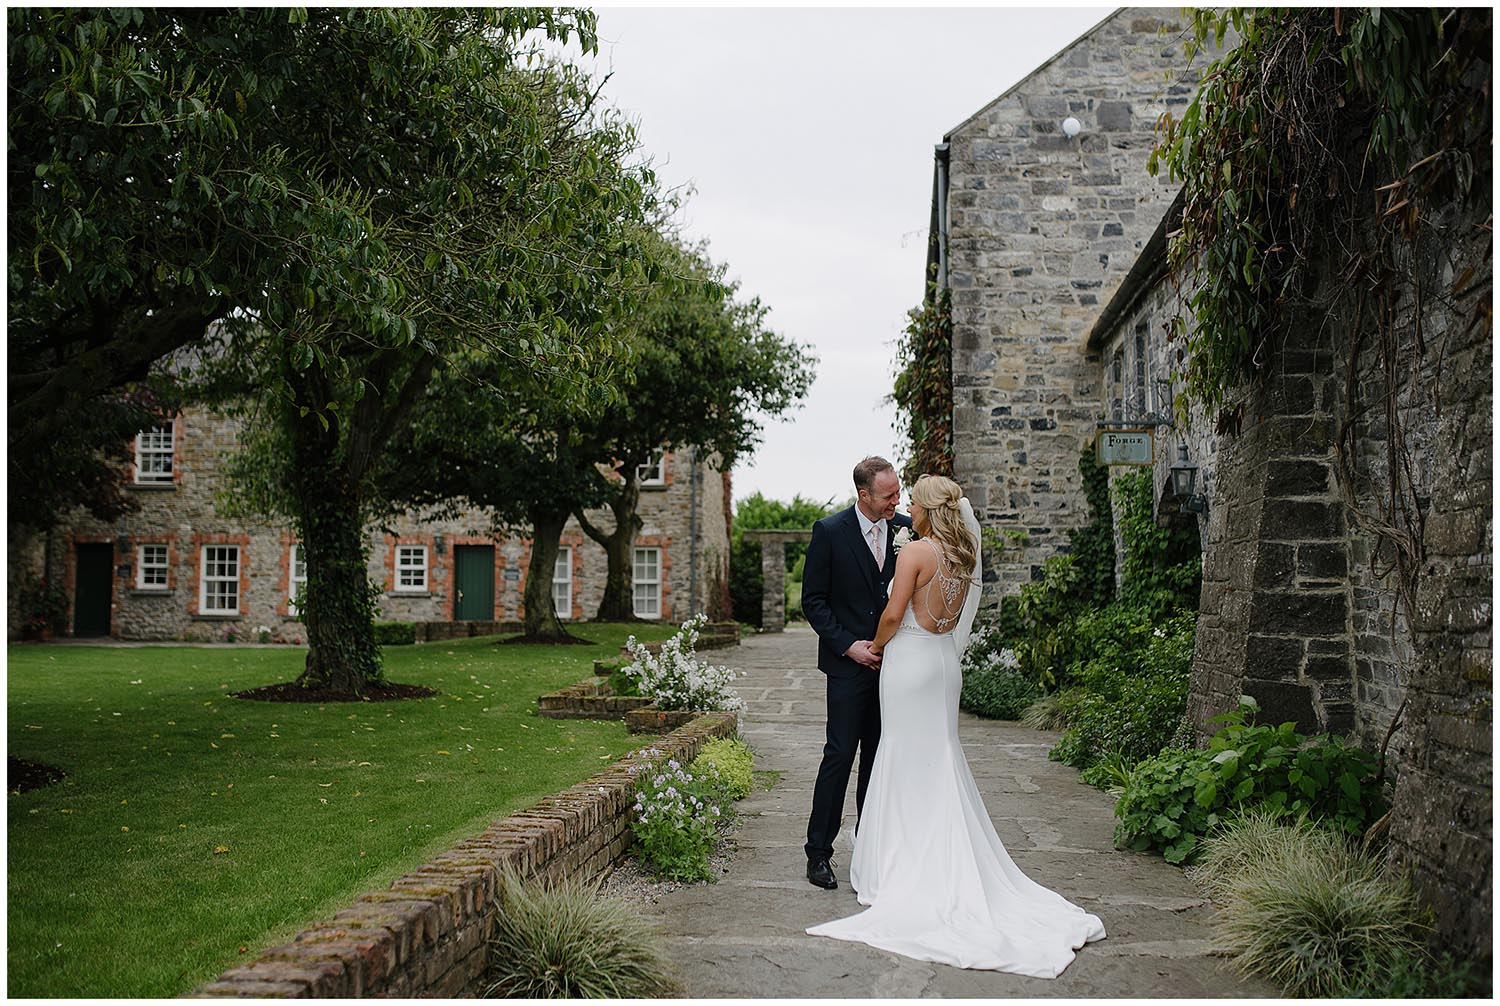 ballymagarvey-village-Irish-wedding-photographer-jude-browne-photography_0202.JPG